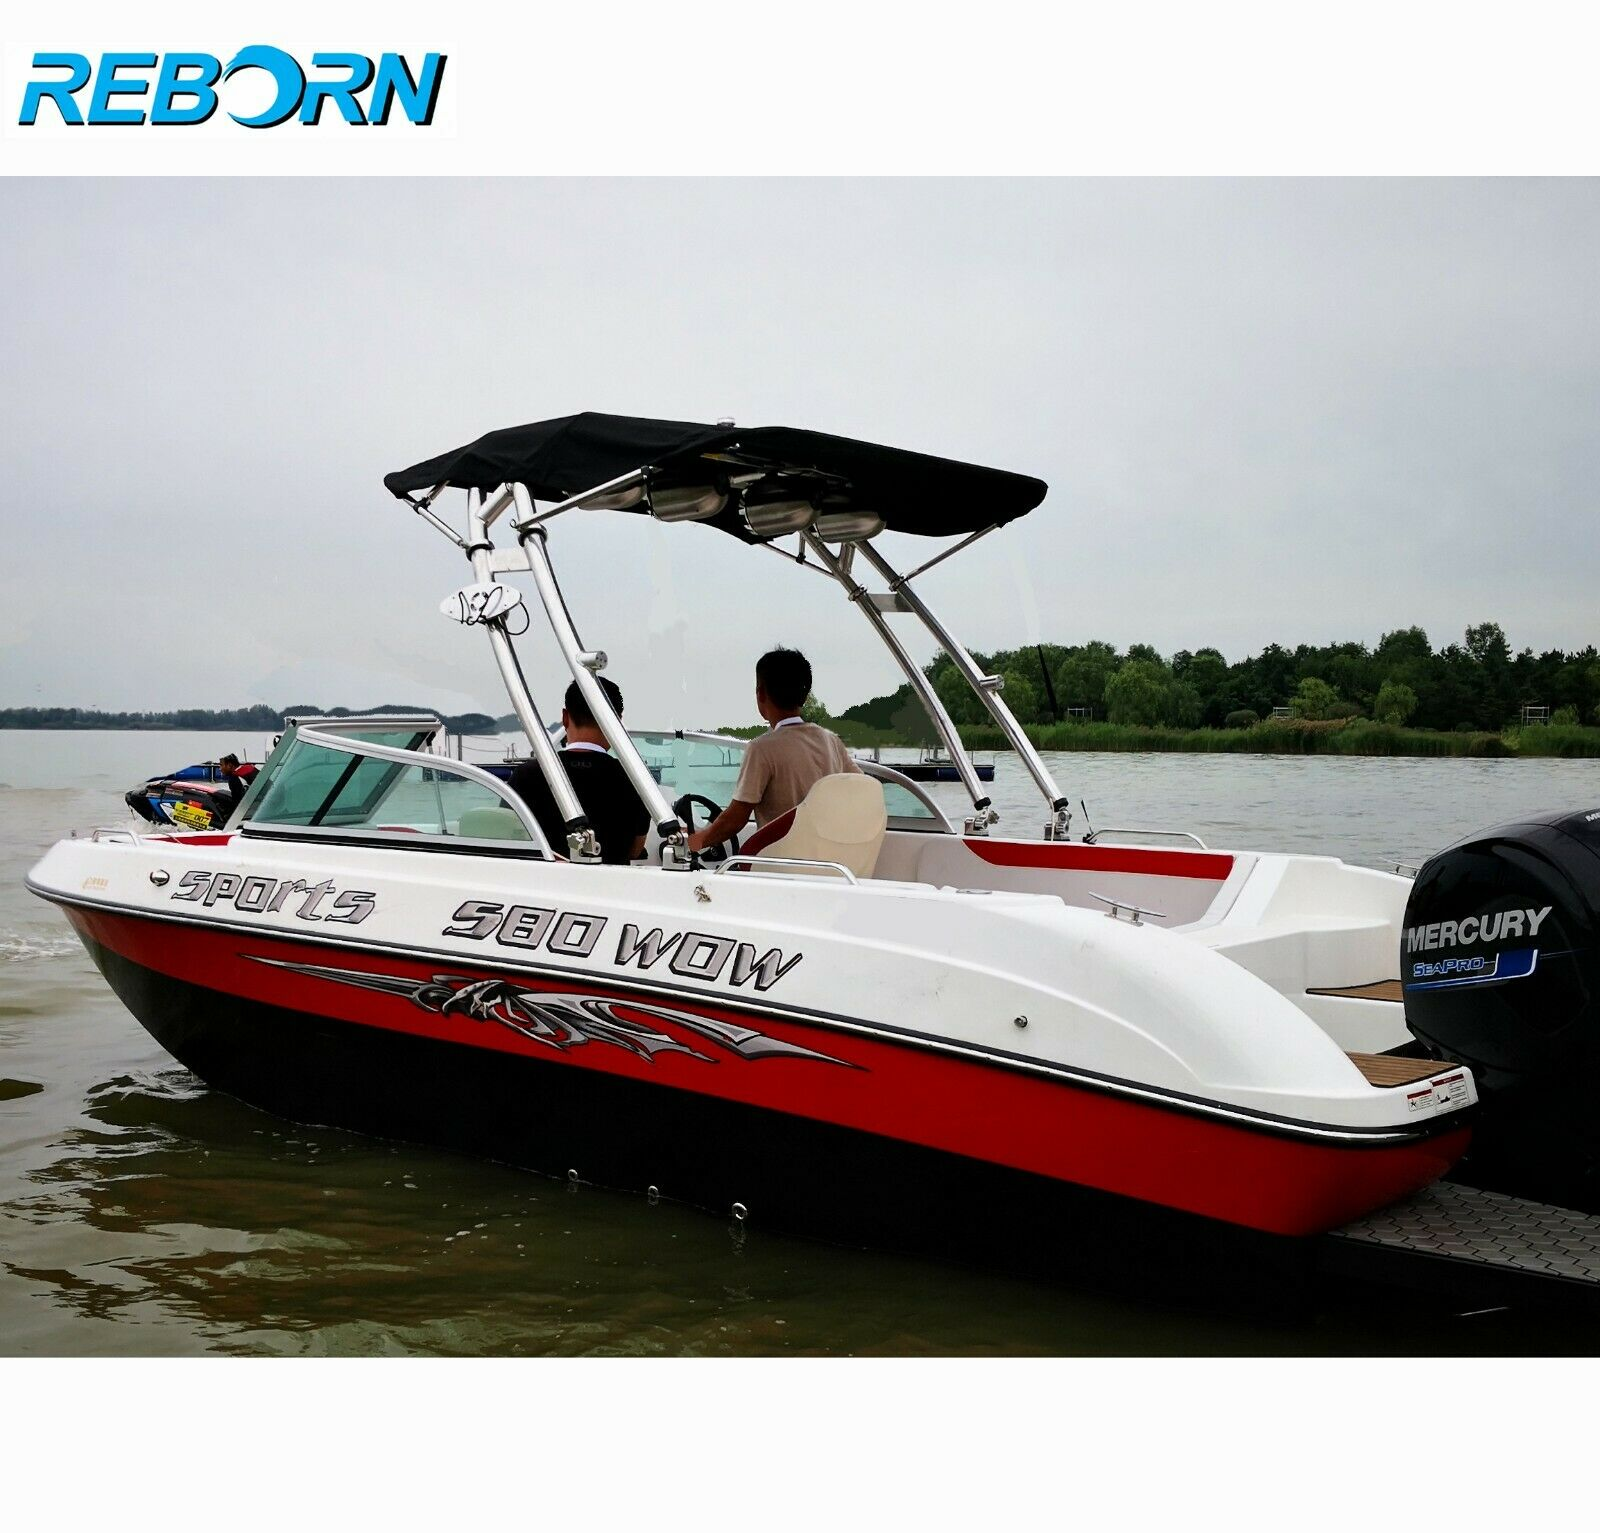 Reborn Launch Boat Wakeboard Tower Polished Plus Pro3 Foldable Tower Bimini Top Black Canopy PKG